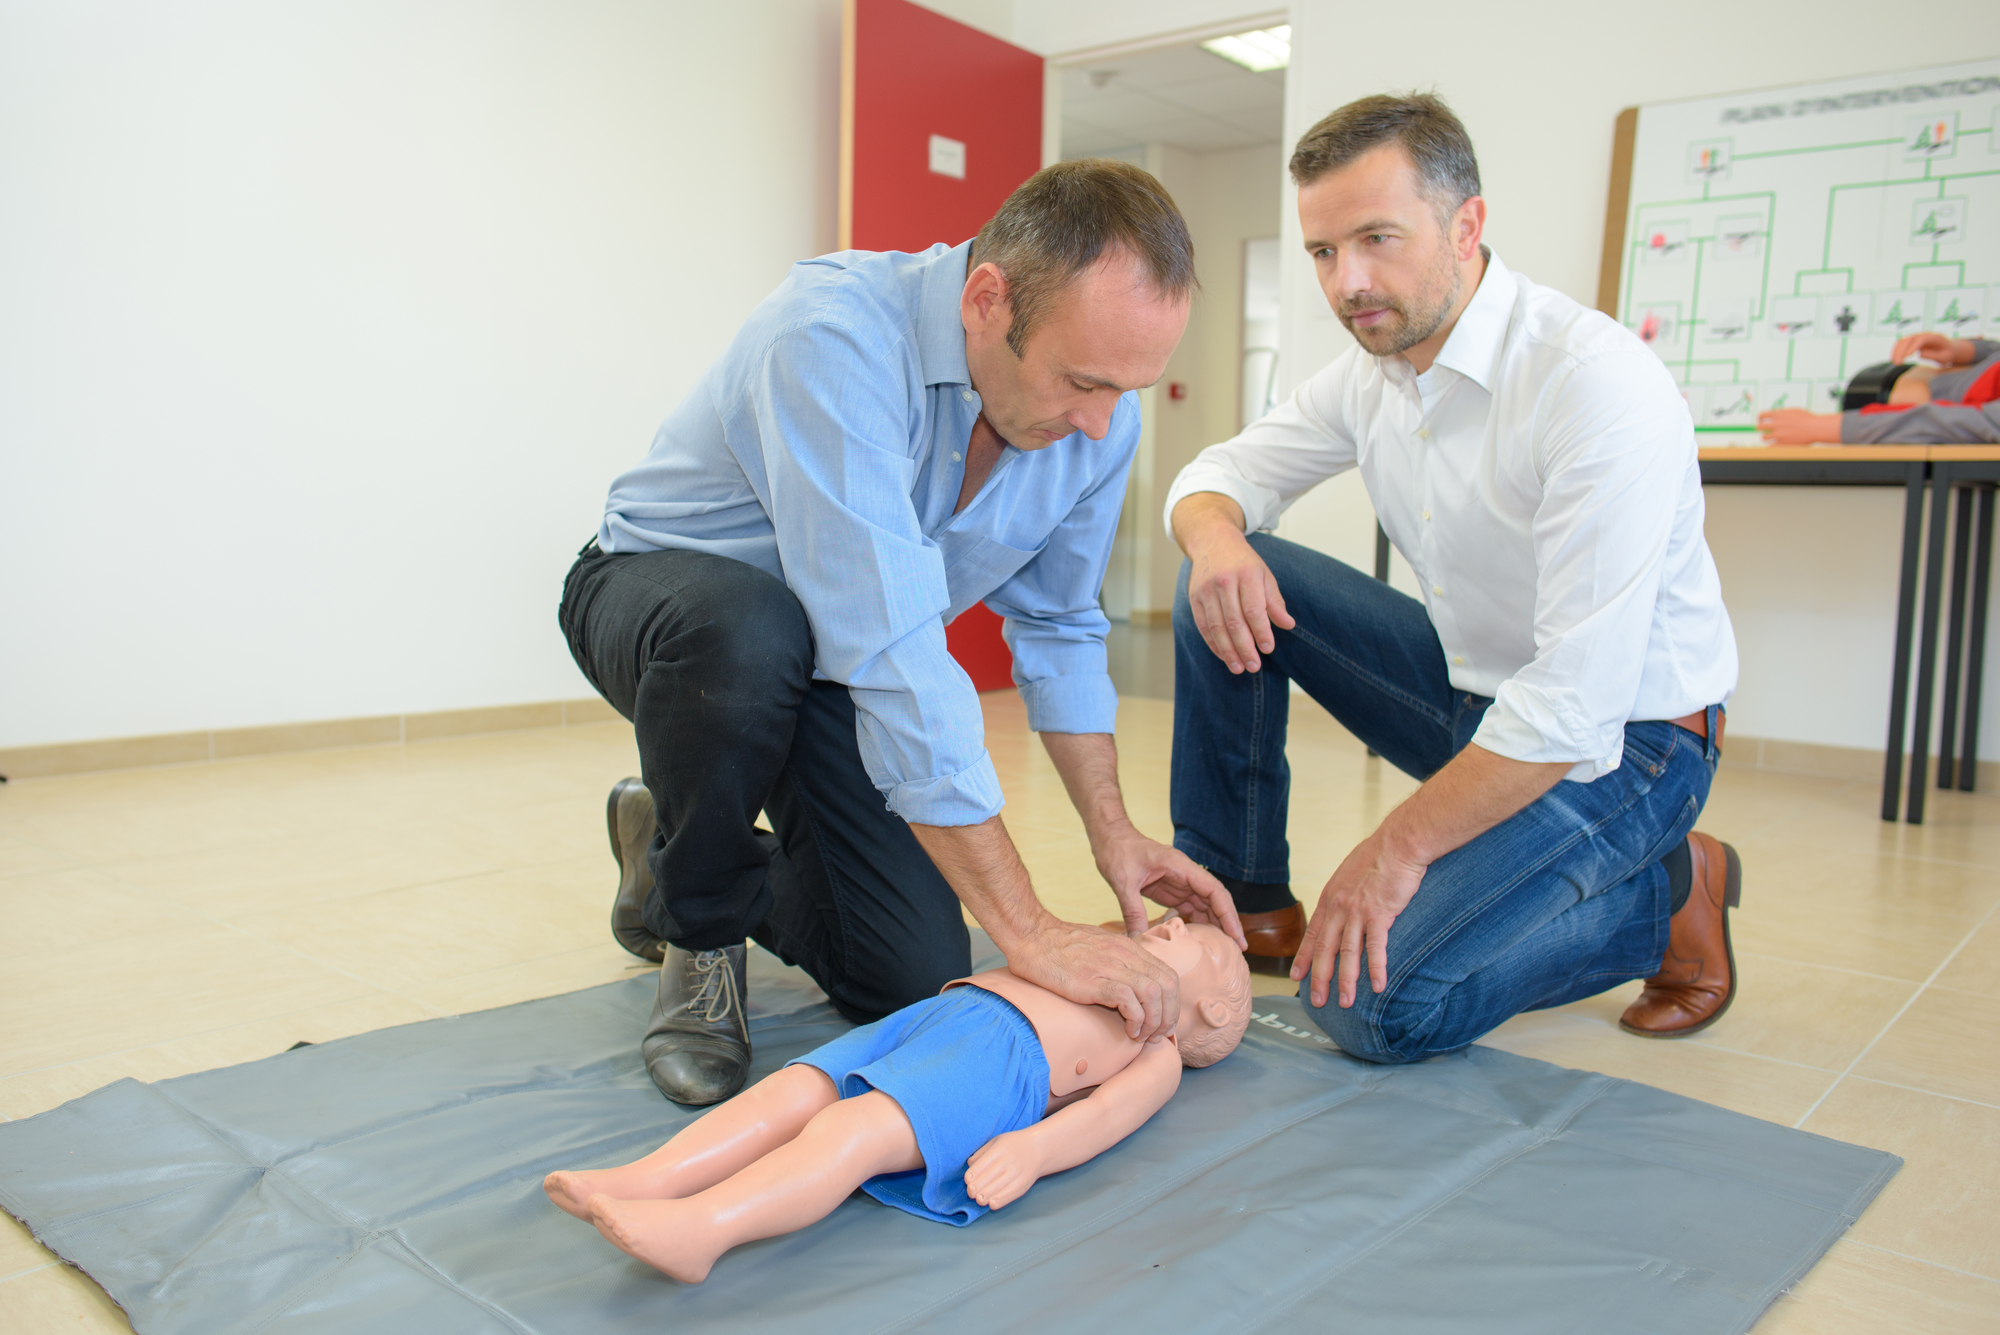 Men performing first aid on a child sized dummy